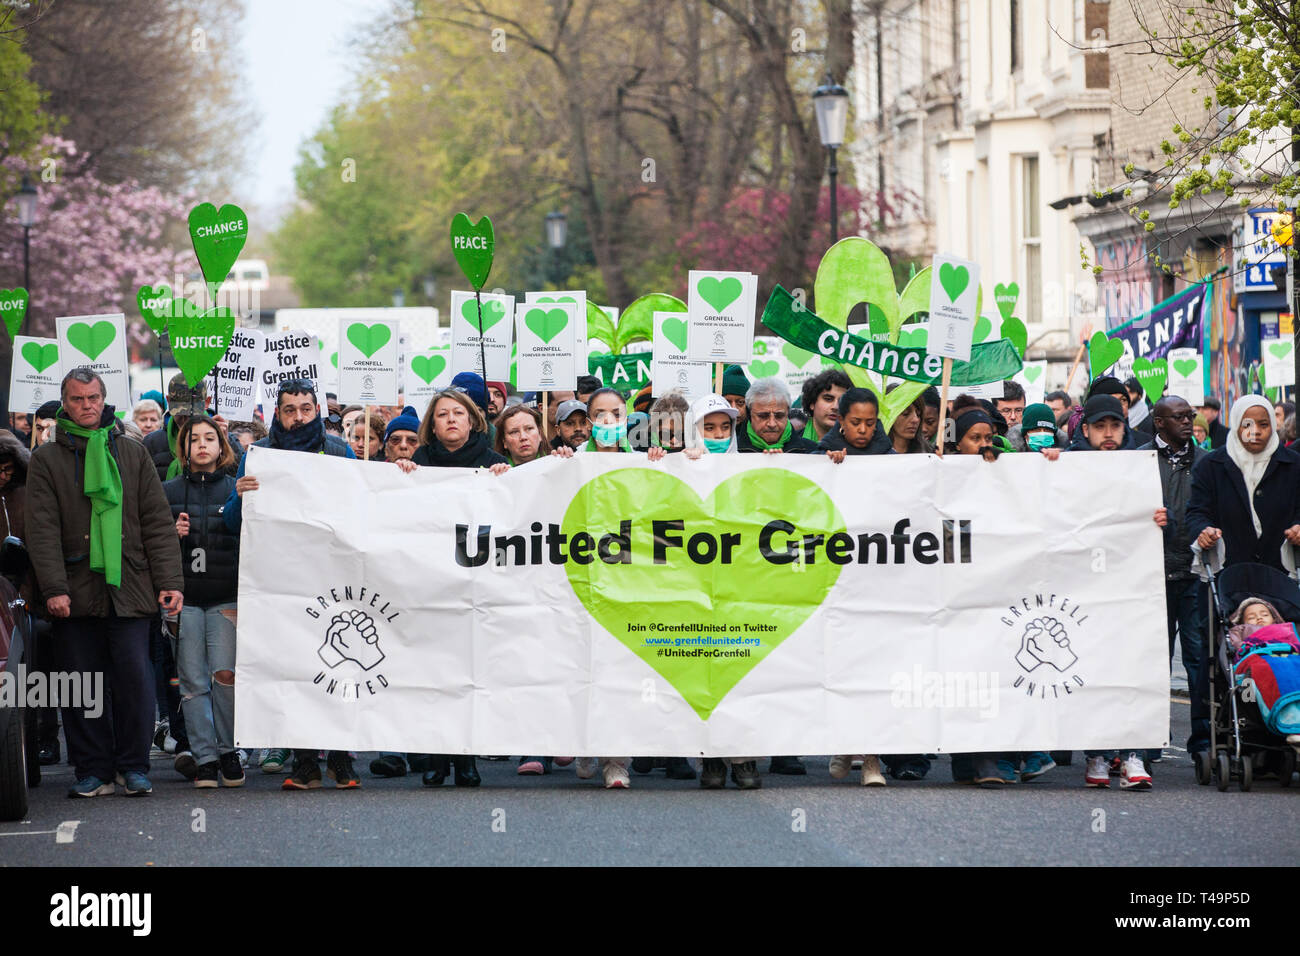 London, UK. 14th April 2019. Members of the Grenfell community and firefighters take part in the Grenfell Silent Walk around North Kensington on the monthly anniversary of the fire on 14th June 2017. 72 people died in the Grenfell Tower fire and over 70 were injured. Credit: Mark Kerrison/Alamy Live News - Stock Image